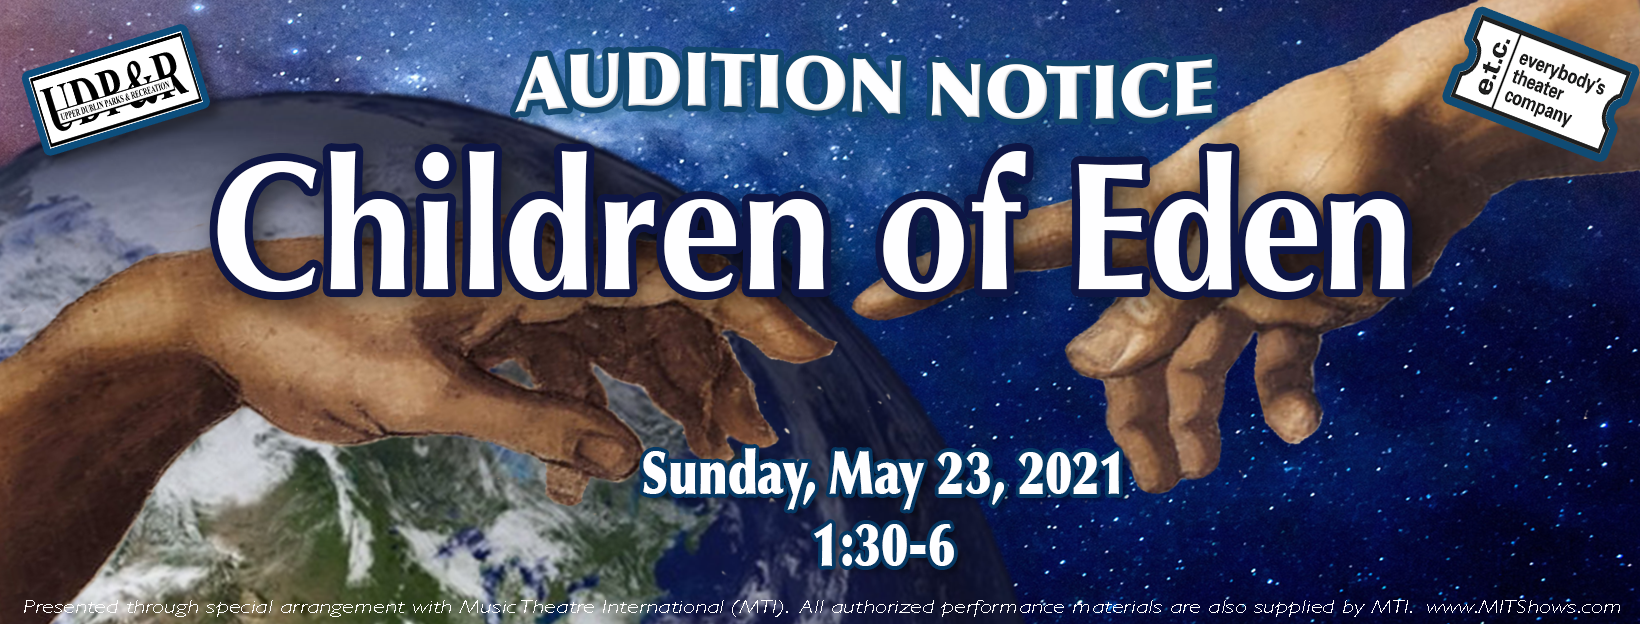 Children of Eden Audition Banner